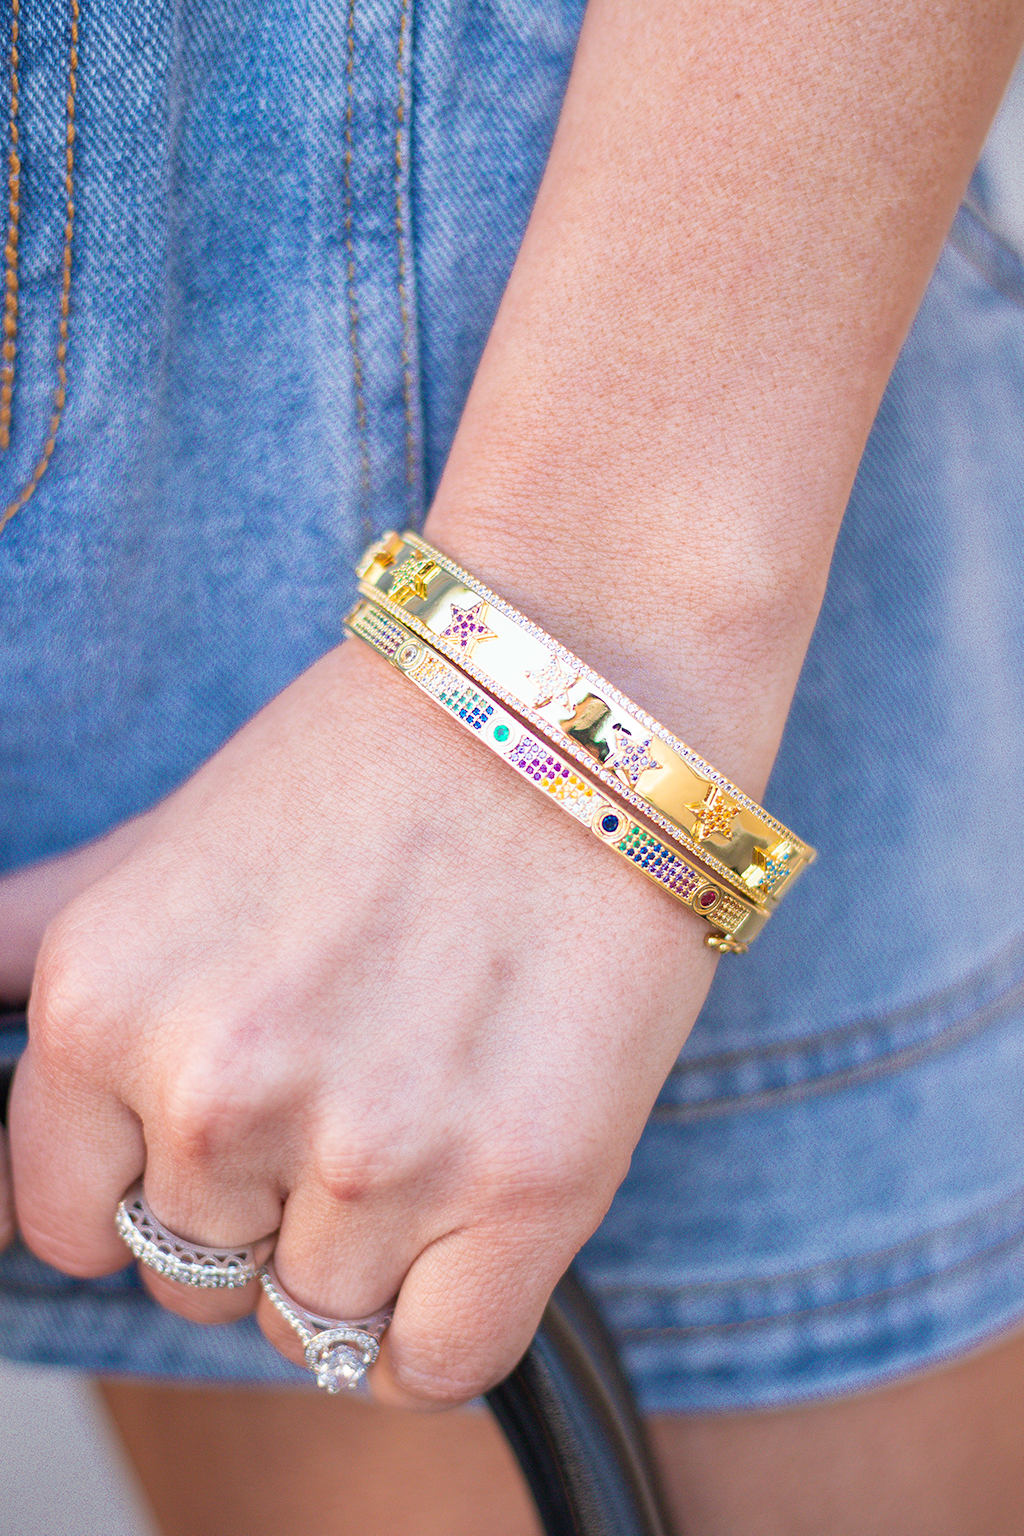 If youre looking for a fun Cartier dupe than you have found the perfect one!! Our newest Gemili bravely features little colorful rainbow jewels with the iconic set up of the LOVE bracelets from Cartier!!